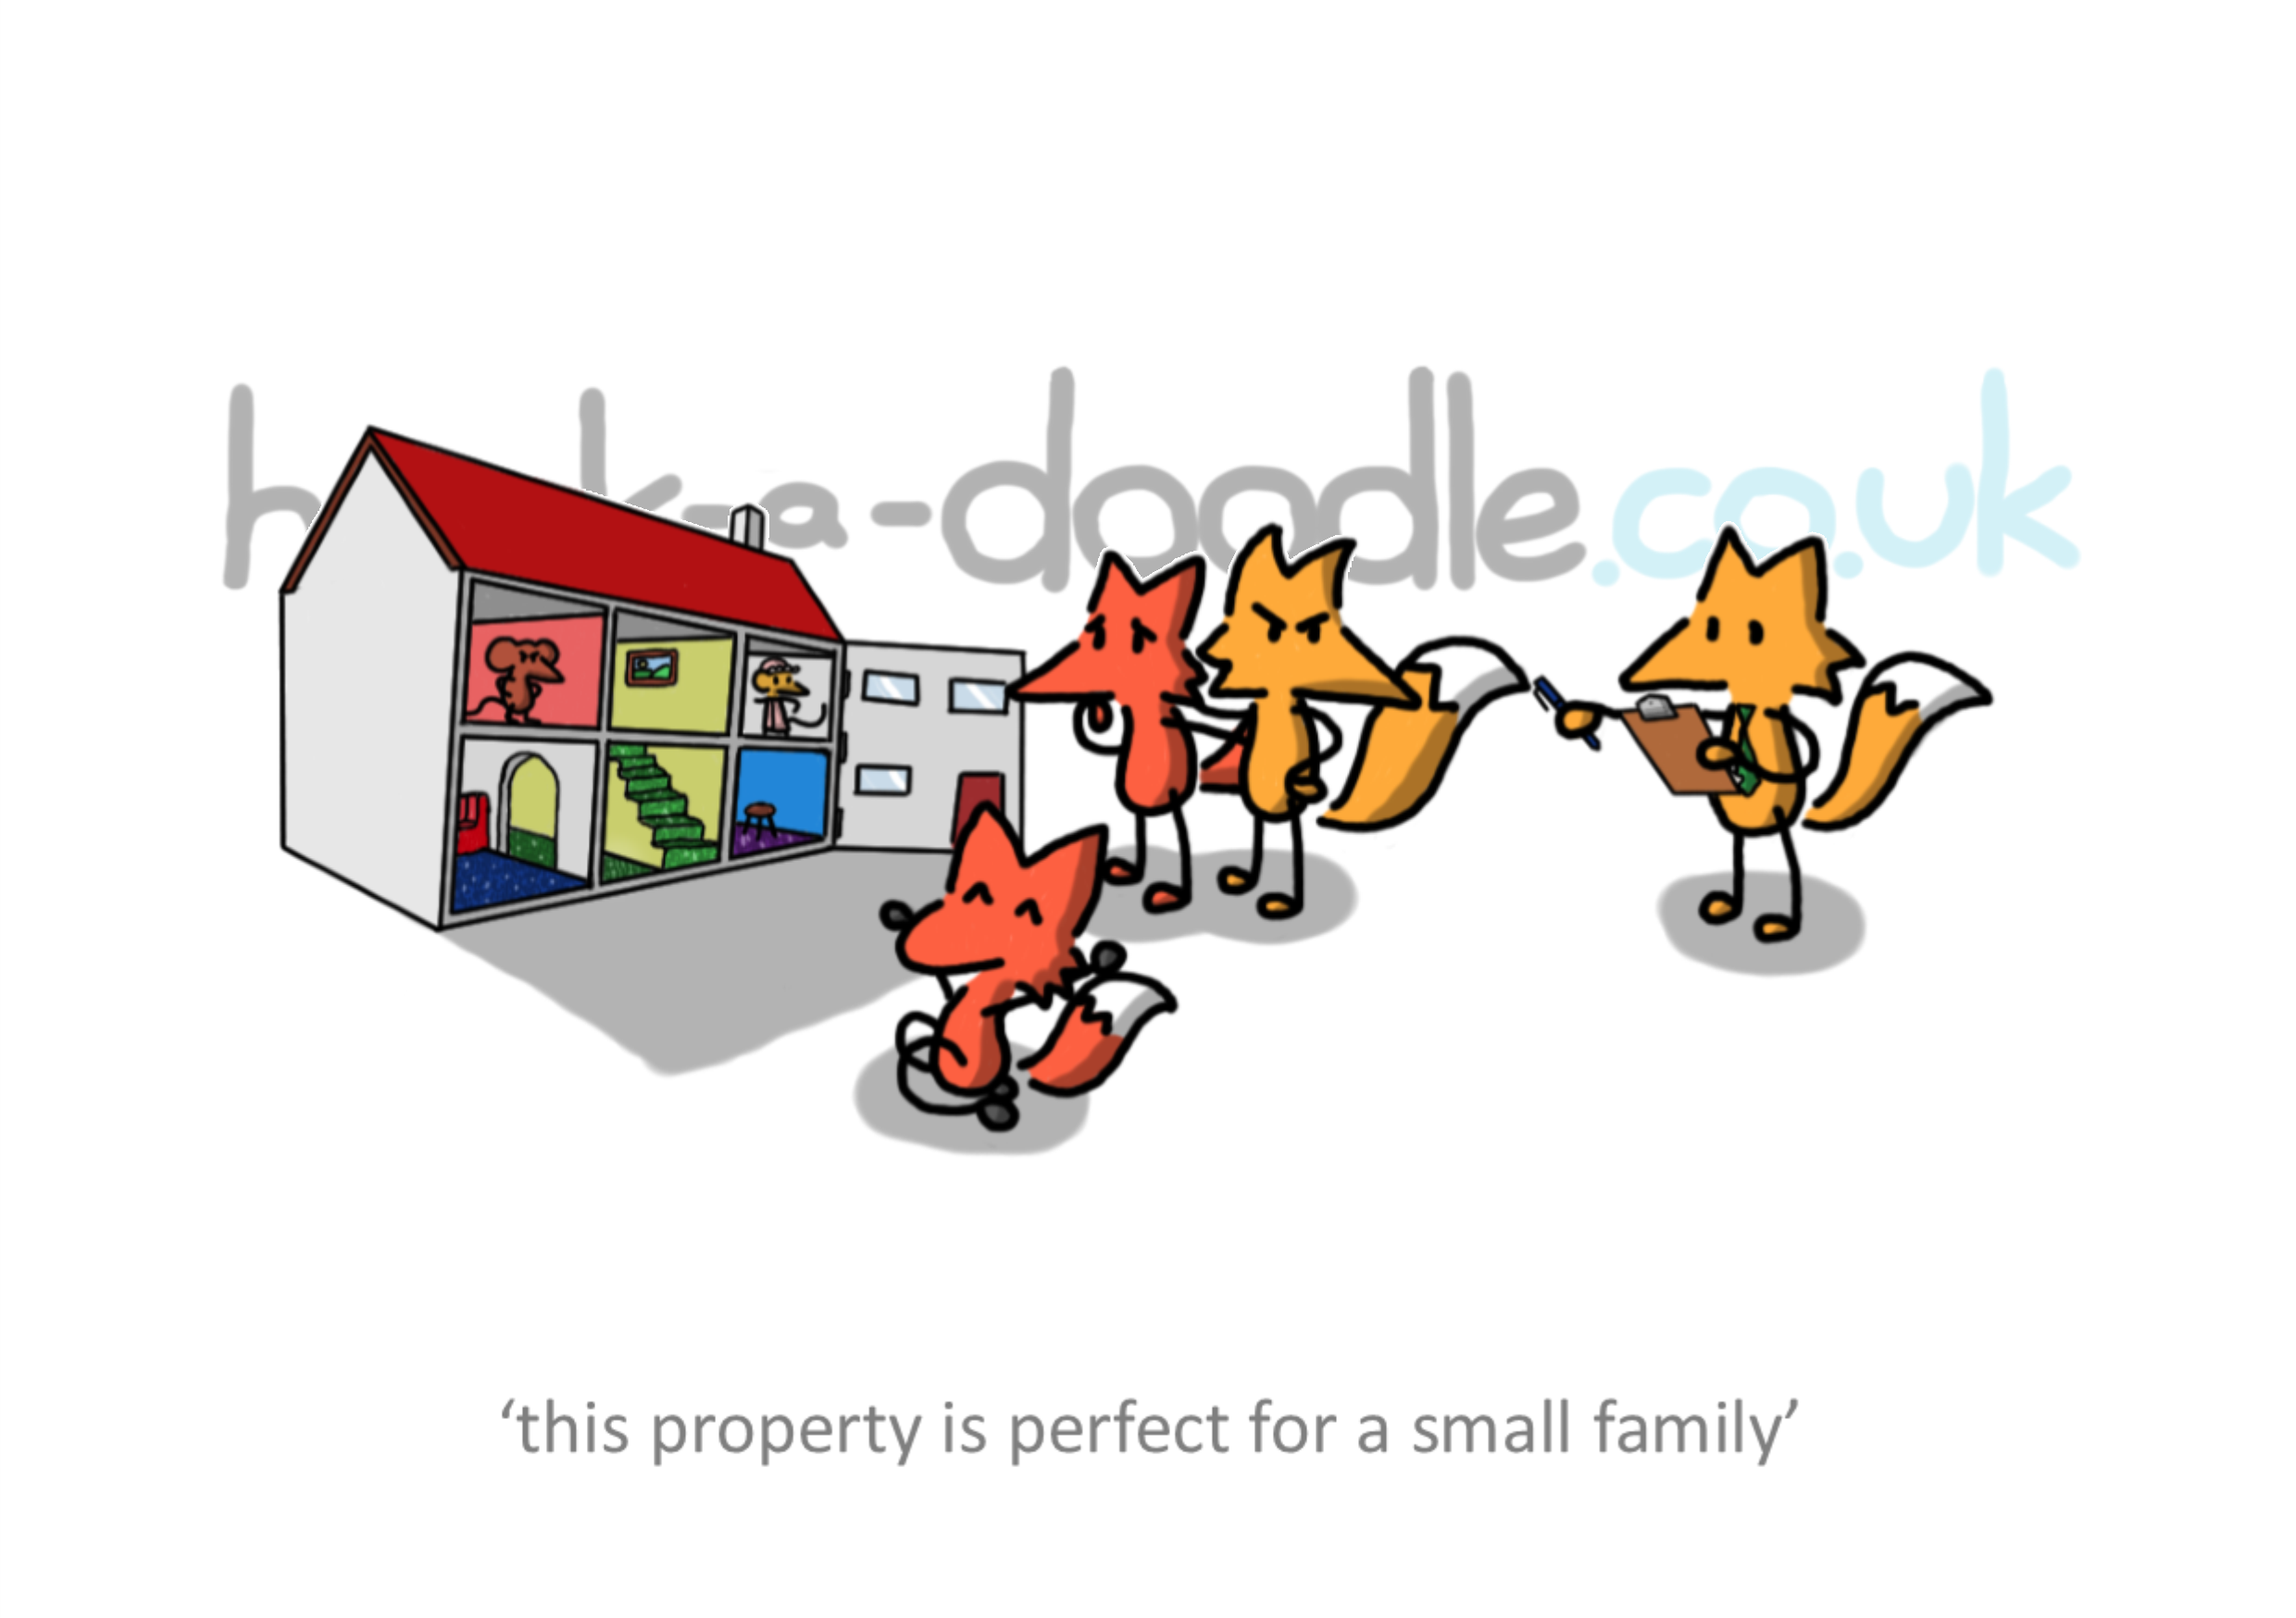 4 - for a small family